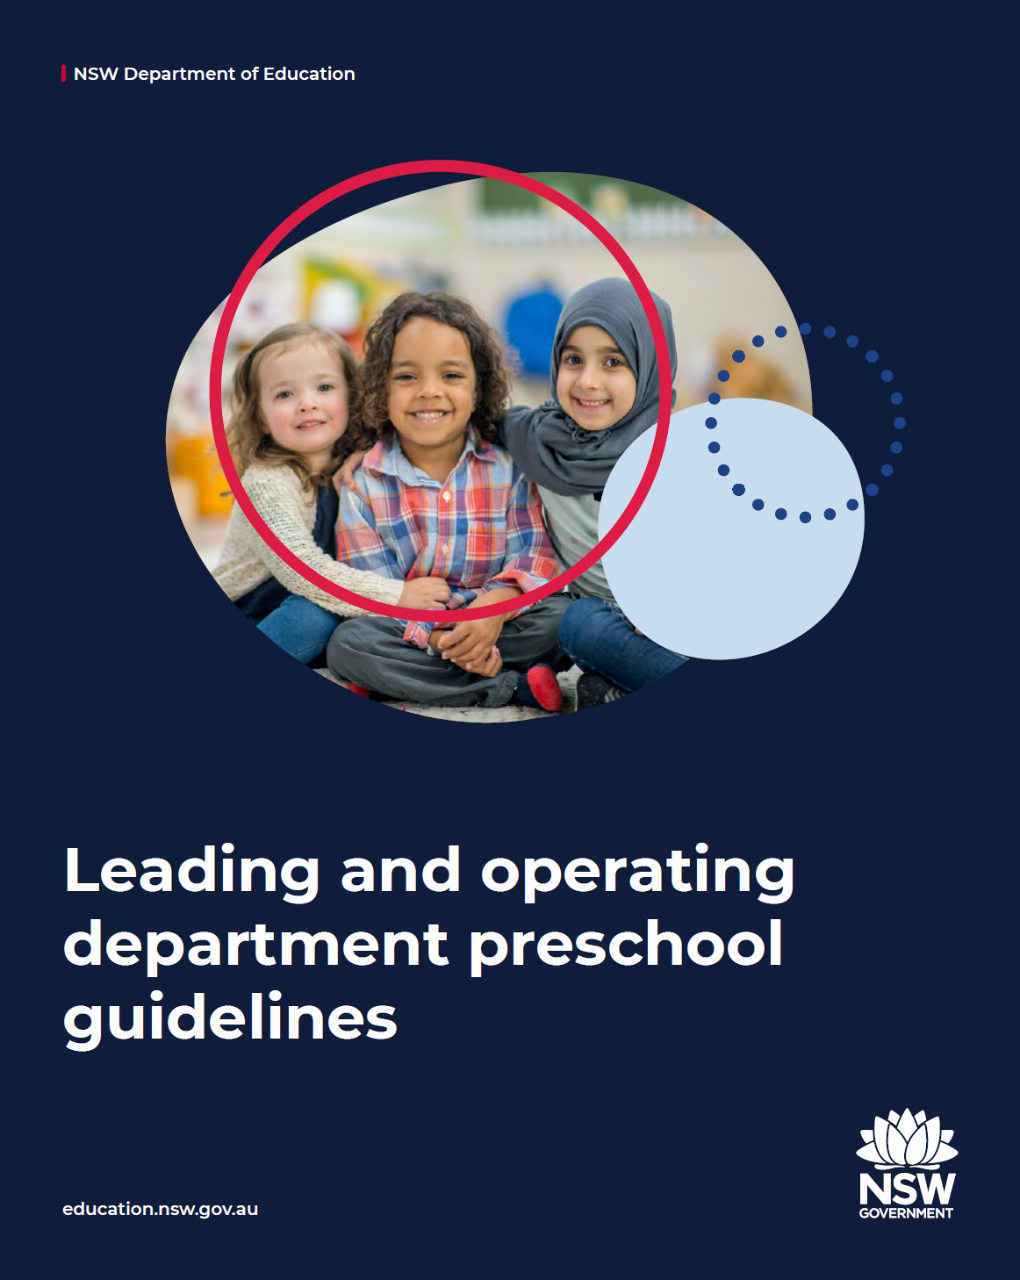 Cover image of the Leading And Operating Department Preschool Guidelines featuring three smiling children sitting on the floor.